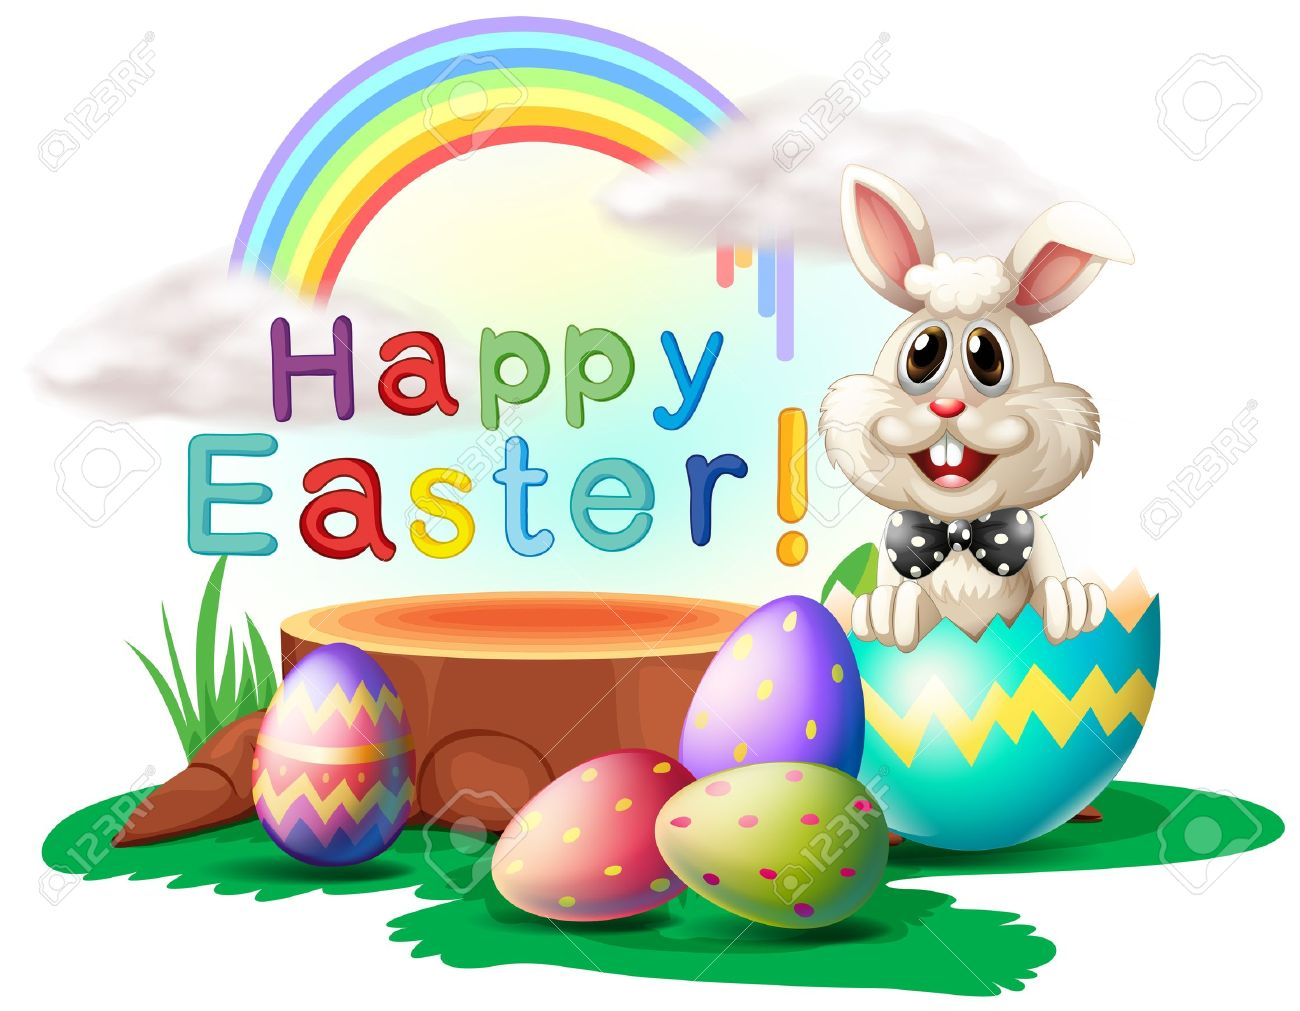 Happy Easter Quotes Greetings Poems Pictures